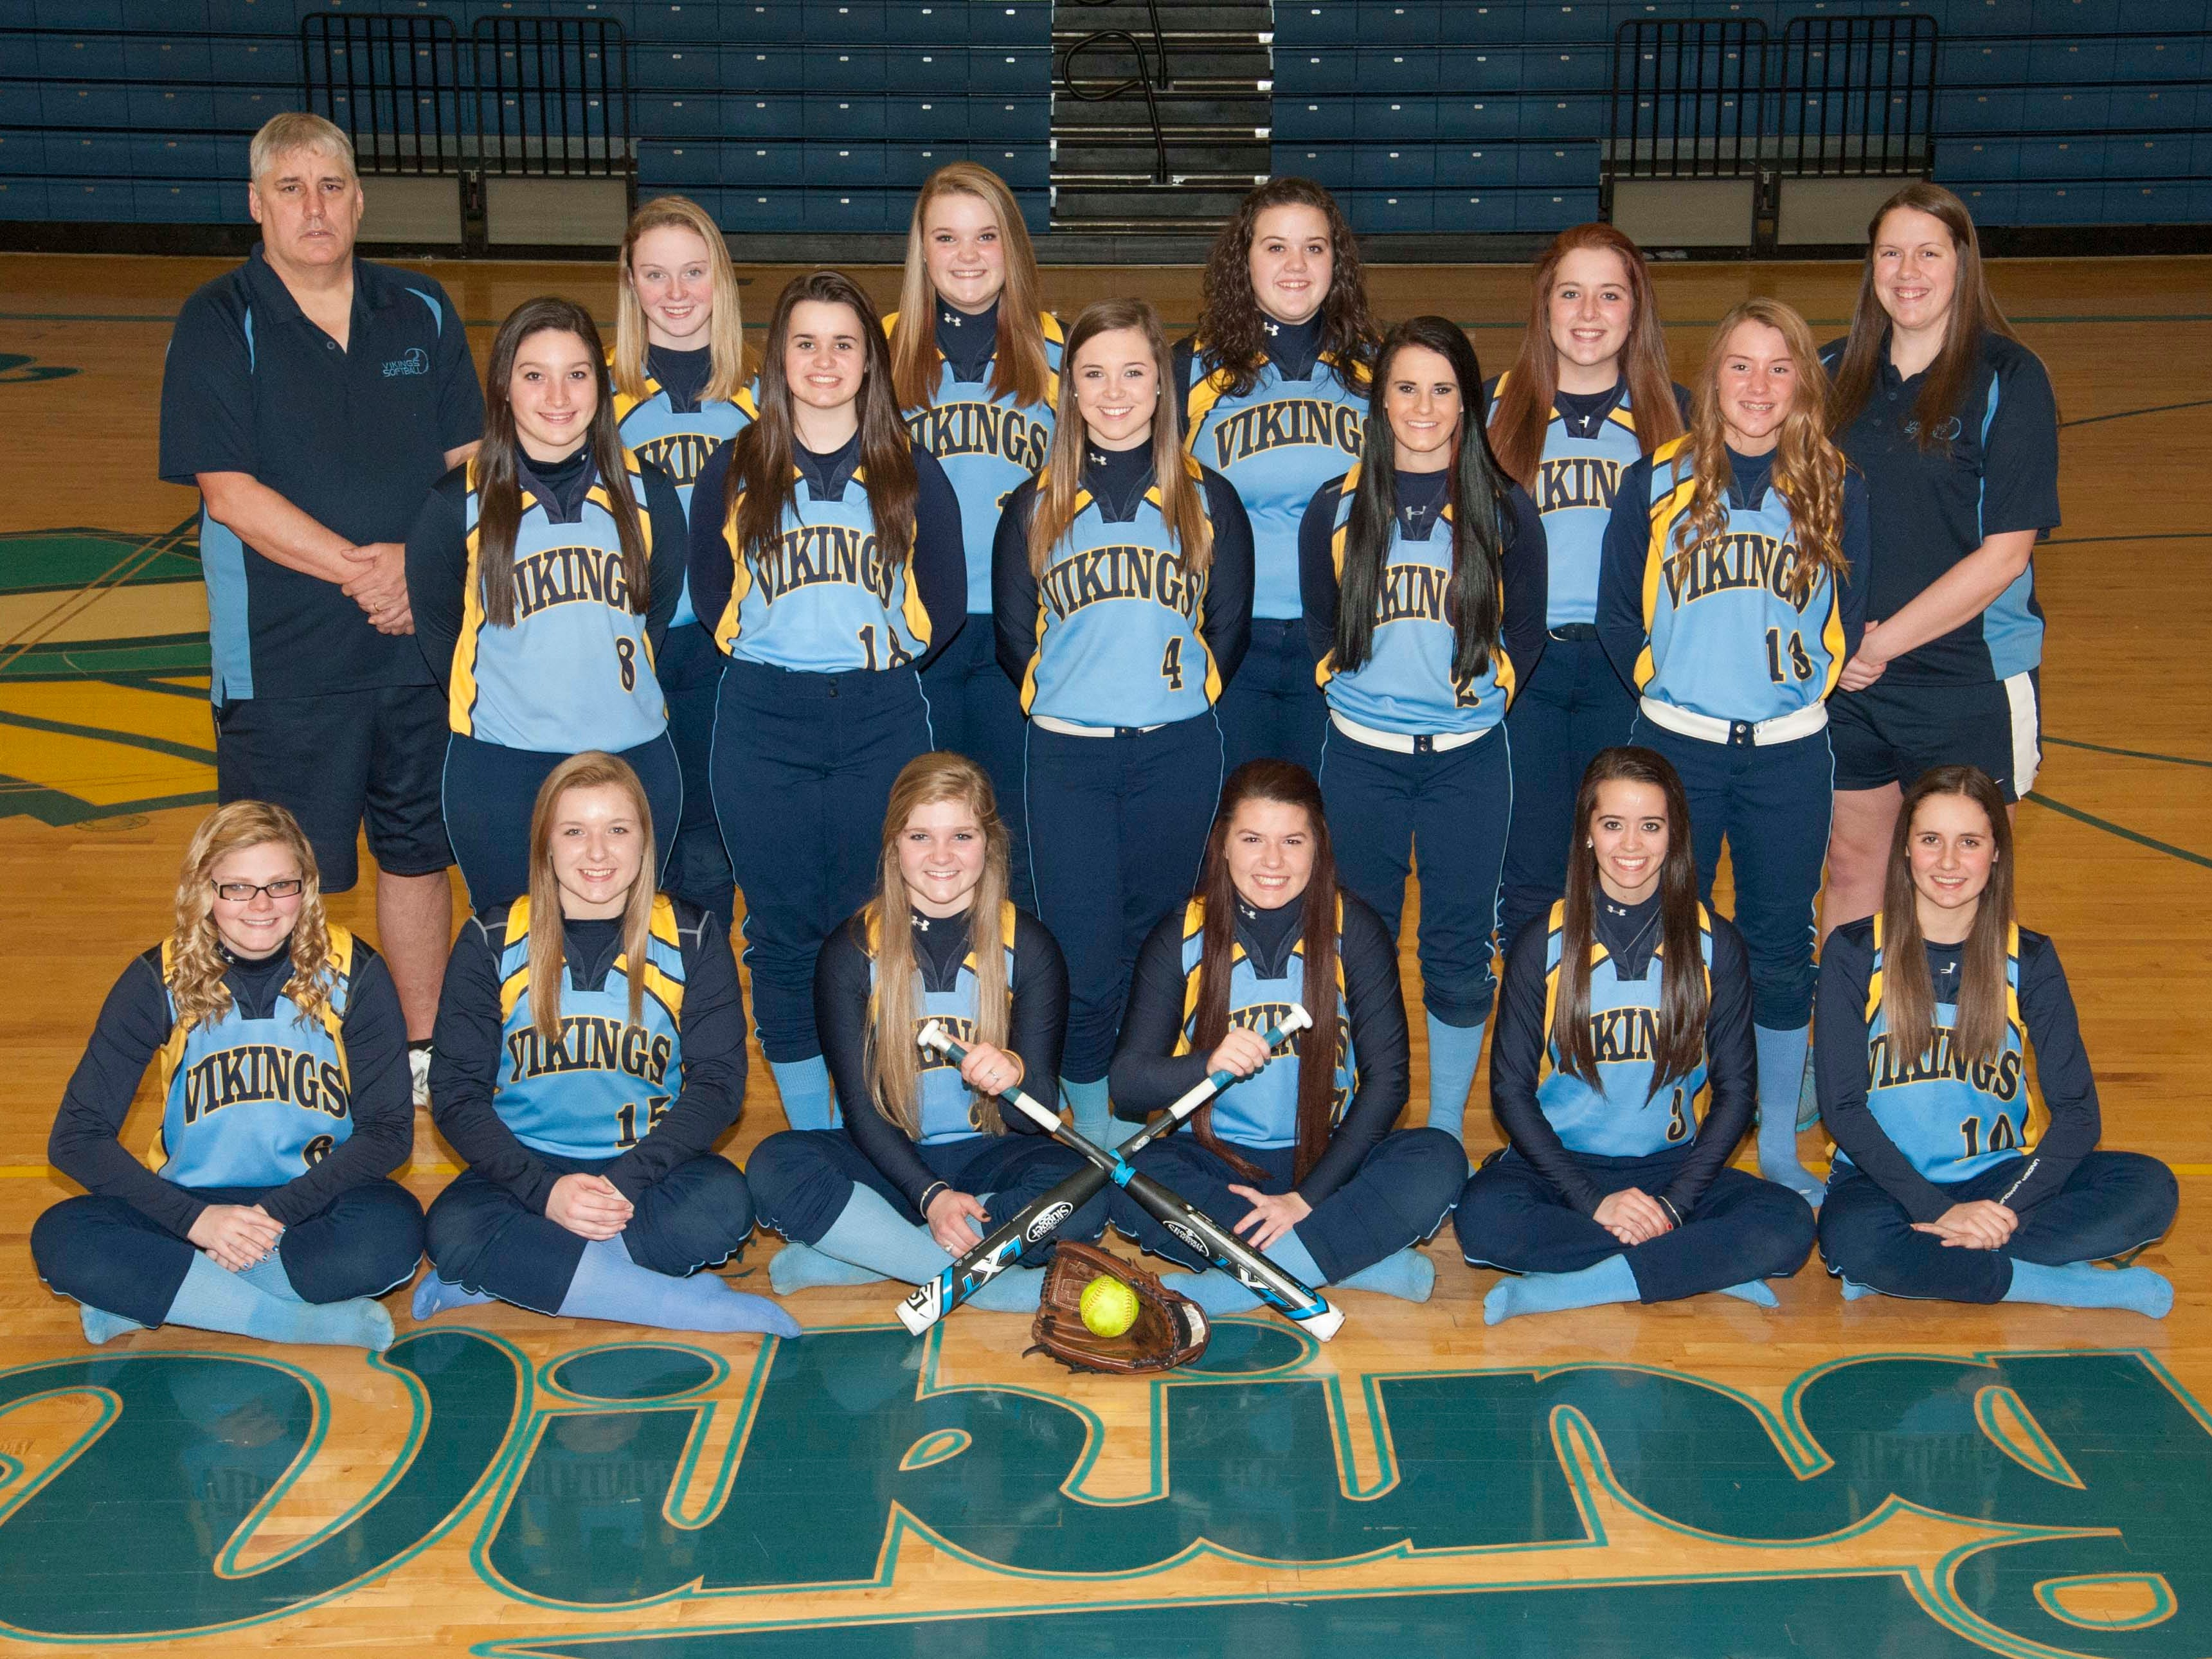 The River Valley 2015 varsity softball team is, front row from left, Shalynn Call, Cassady Starkey, Claire Nicholson, Alexis Reichardt, Alyssa Johnson and Kylie Lang. Second row is Kayla Whitley, Daisy Goodman, Morgan Lott, Cambry Arnold and Mackenzie Warner. Back row is head coach Phil Shepler, Brittany Ewalt, Josie Morrow, Amy Poorman, Madison Myers and coach Katie Jividen.